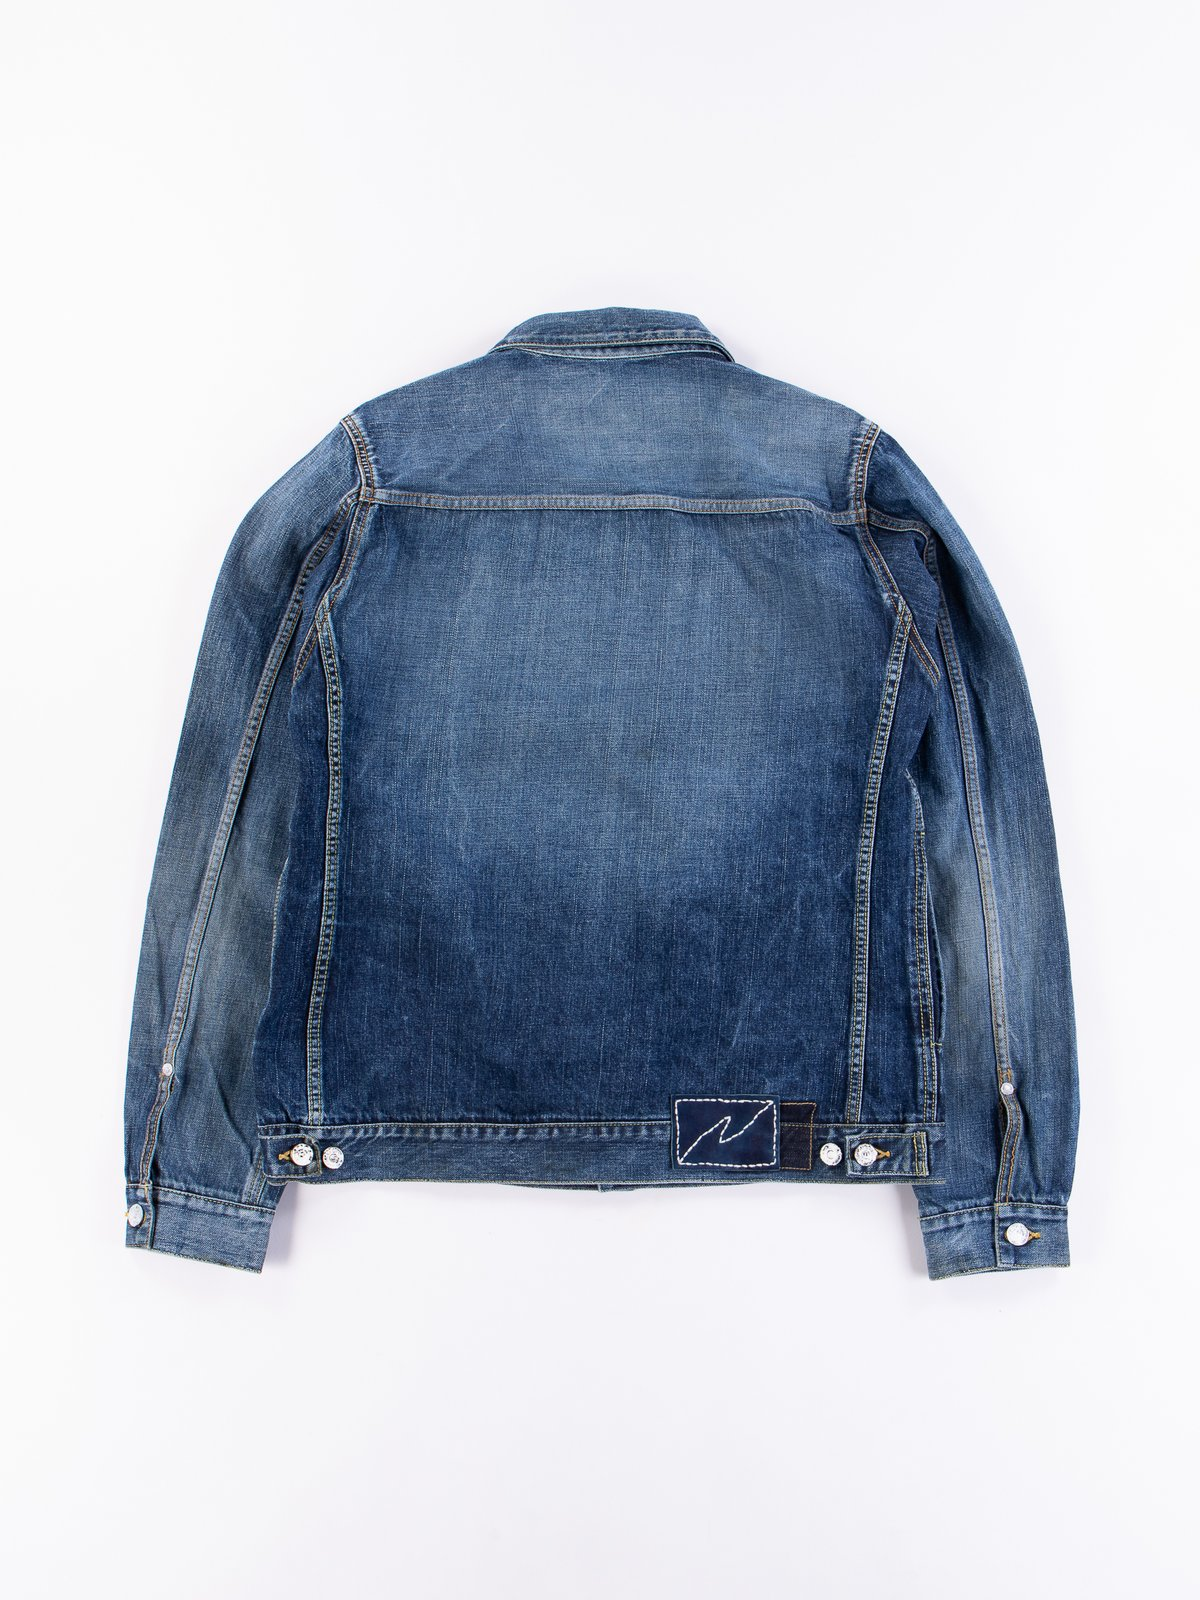 Dry Damaged SS 101 Denim Jacket - Image 7